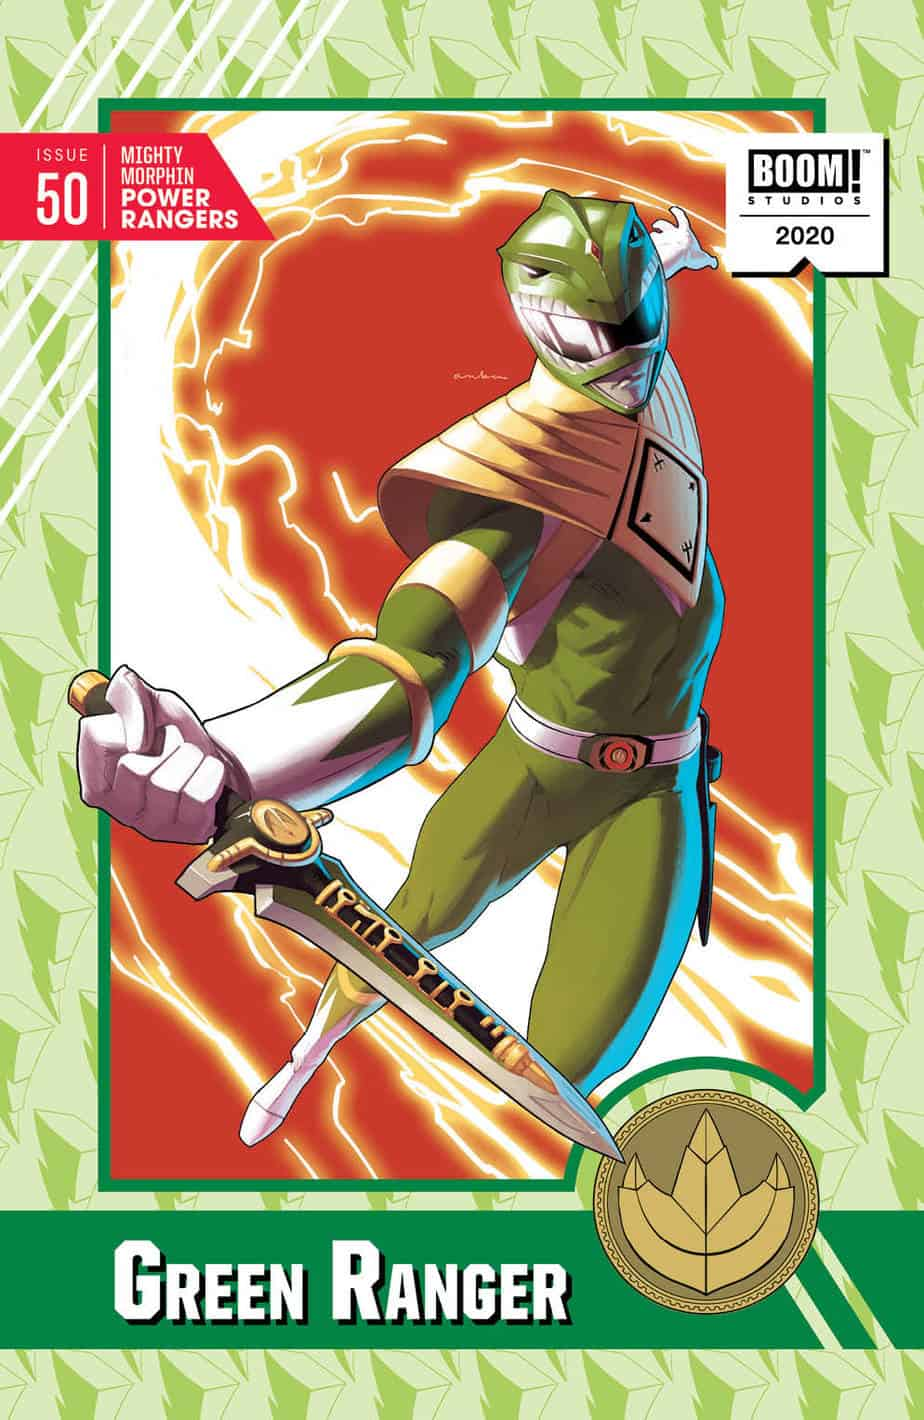 Mighty Morphin Power Rangers #50 - Trading Card Variant